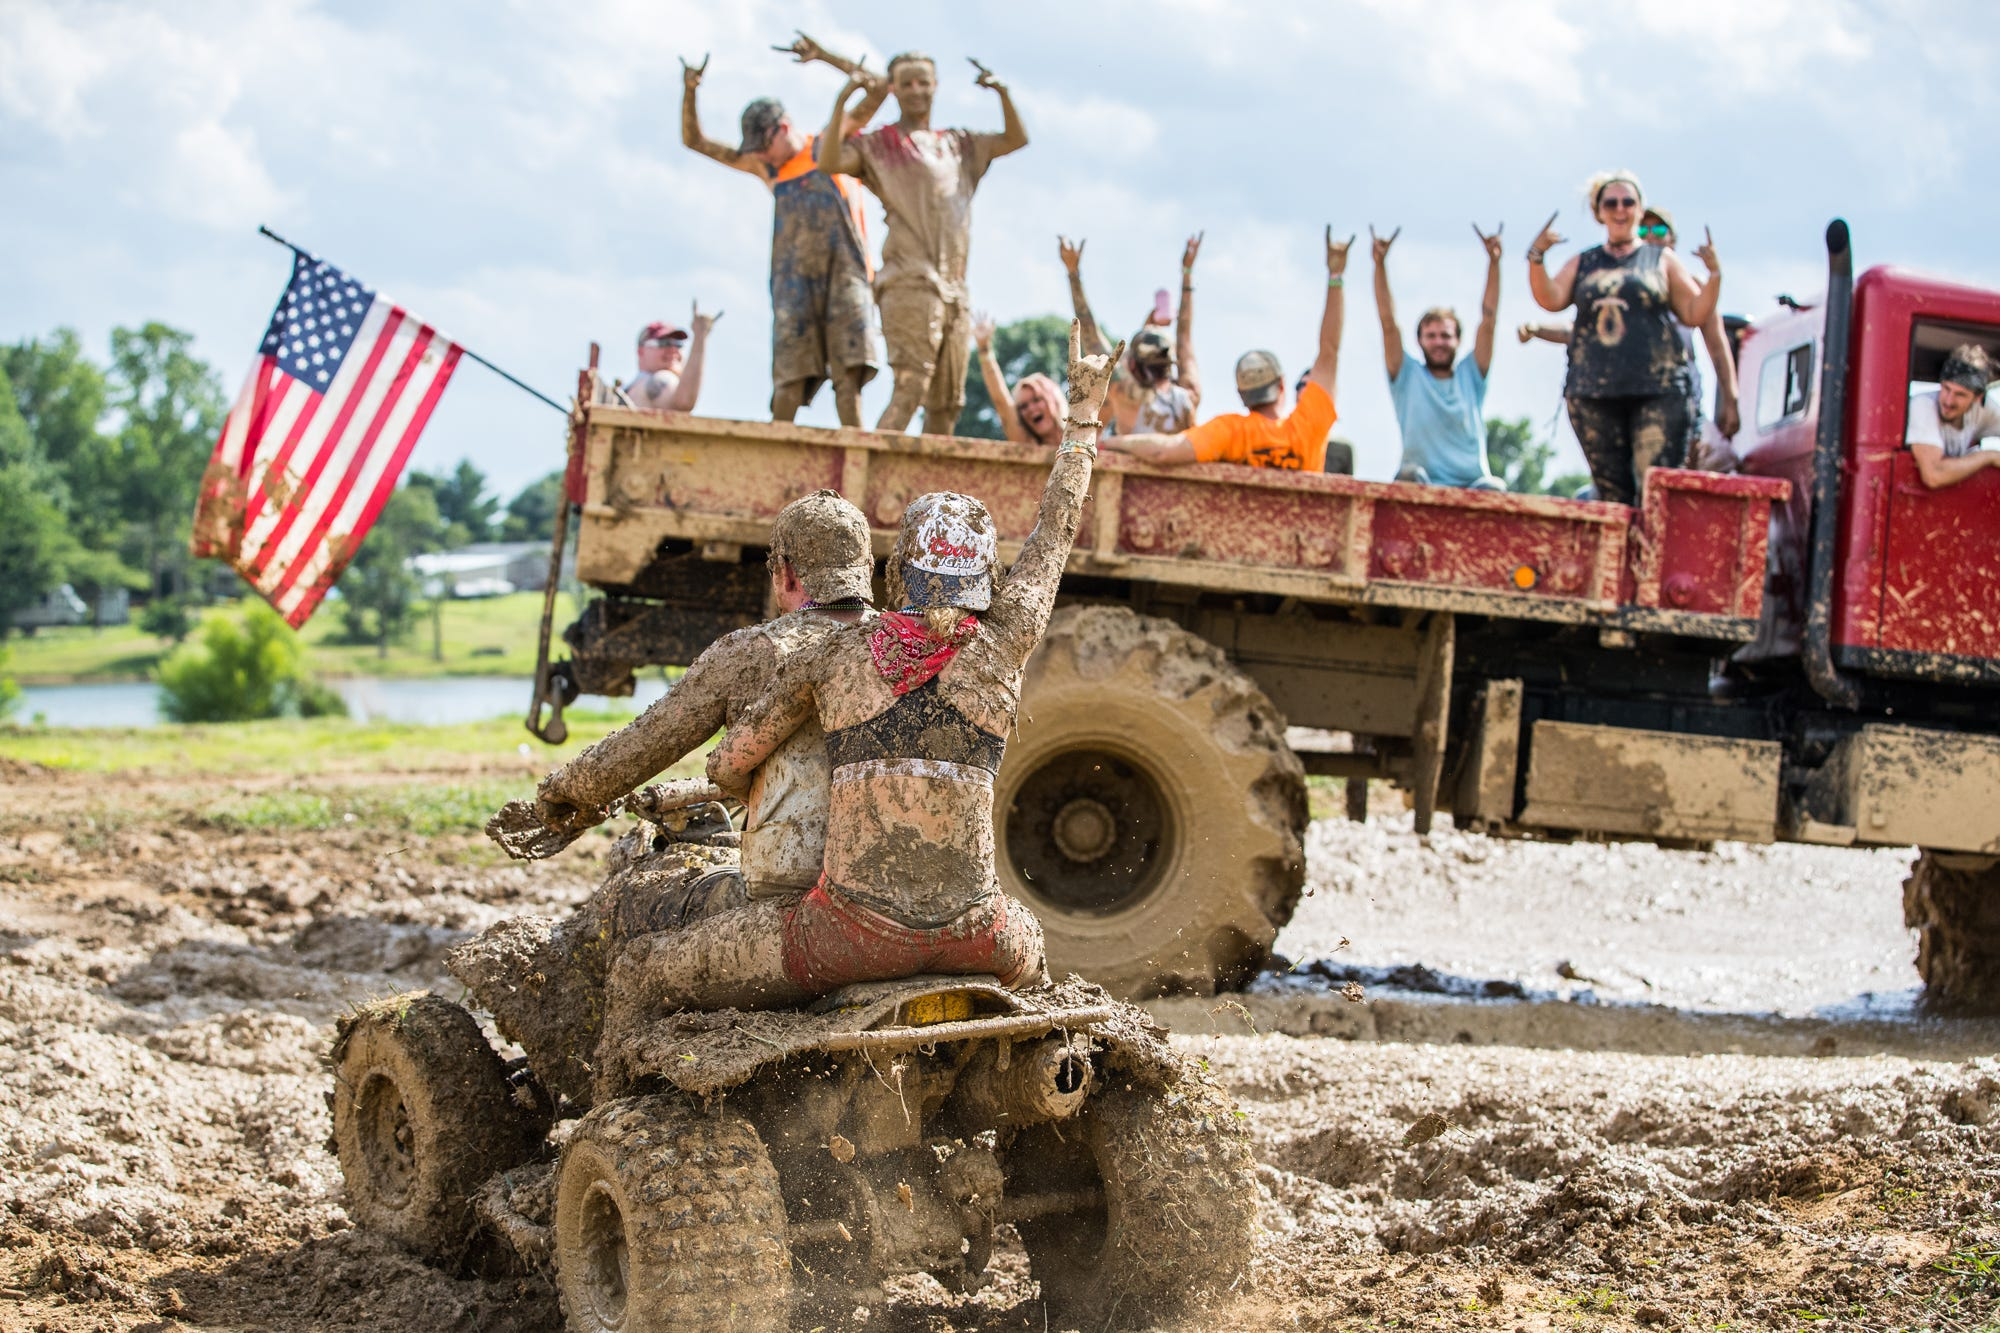 Getting muddy at Redneck Rave Indiana 2018